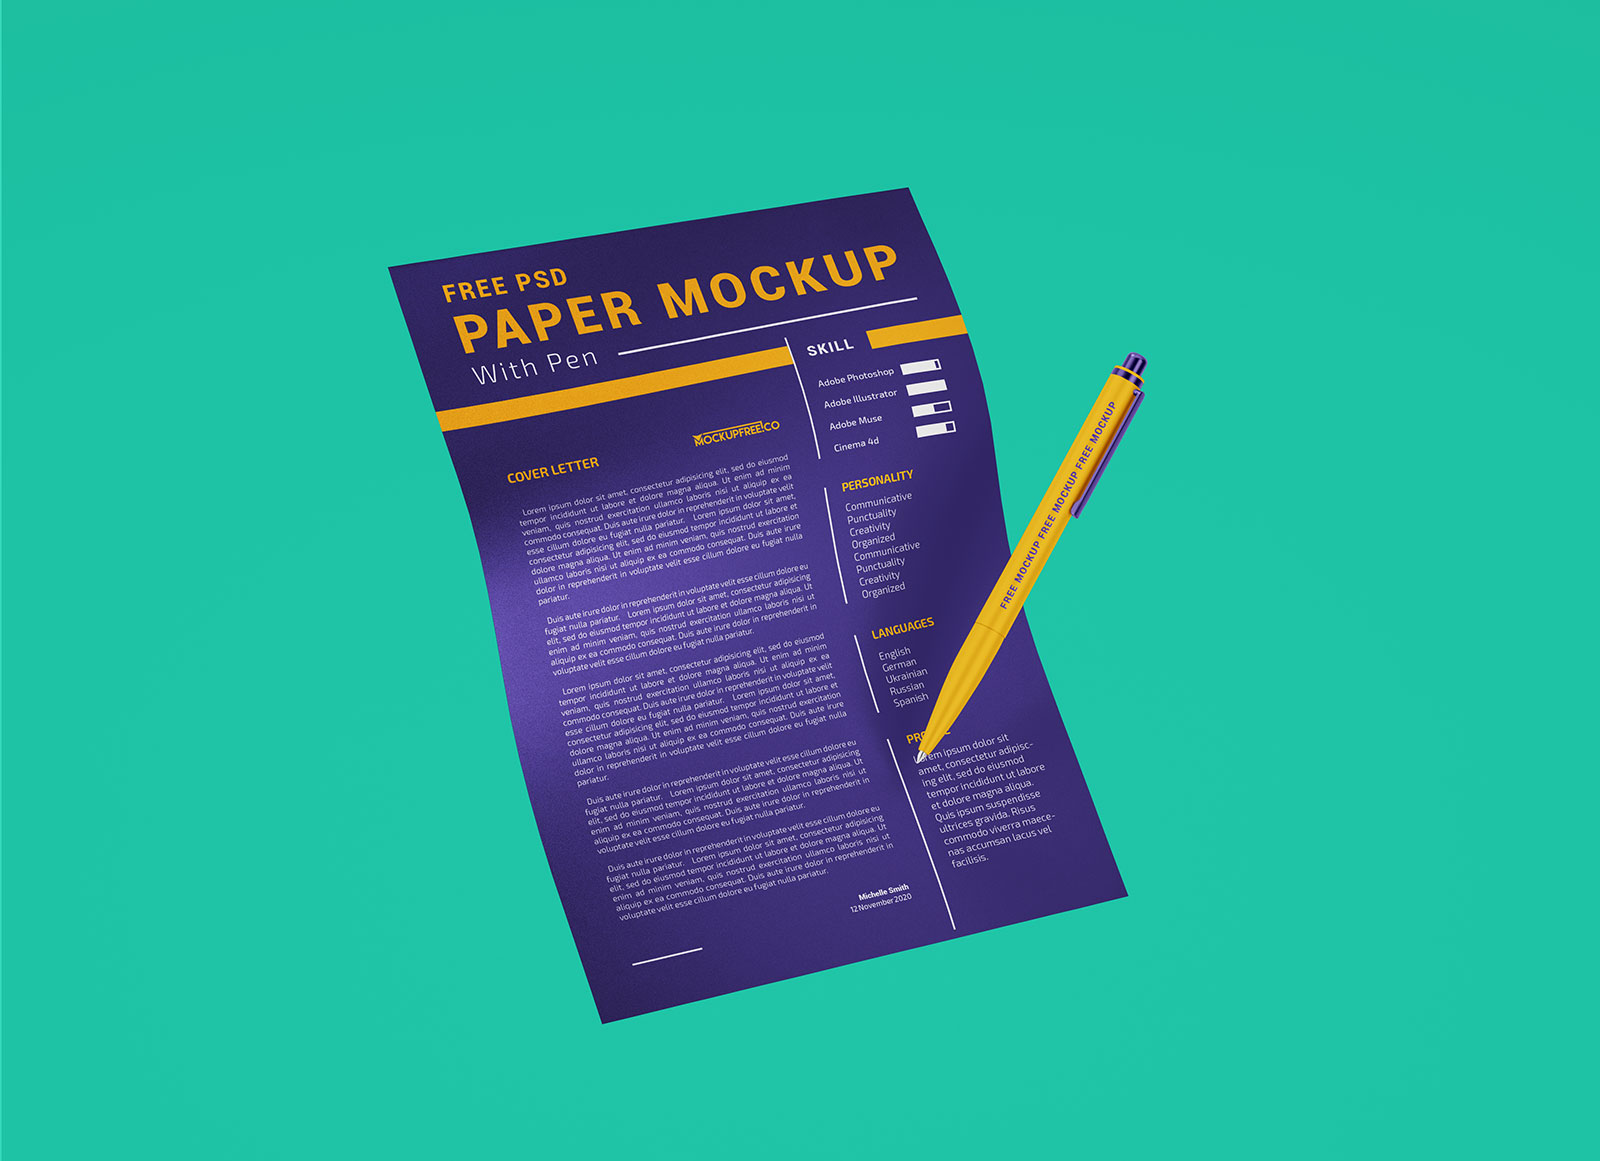 Free-A4-Size-Paper-with-Ballpoint-Pen-Mockup-PSD-Set